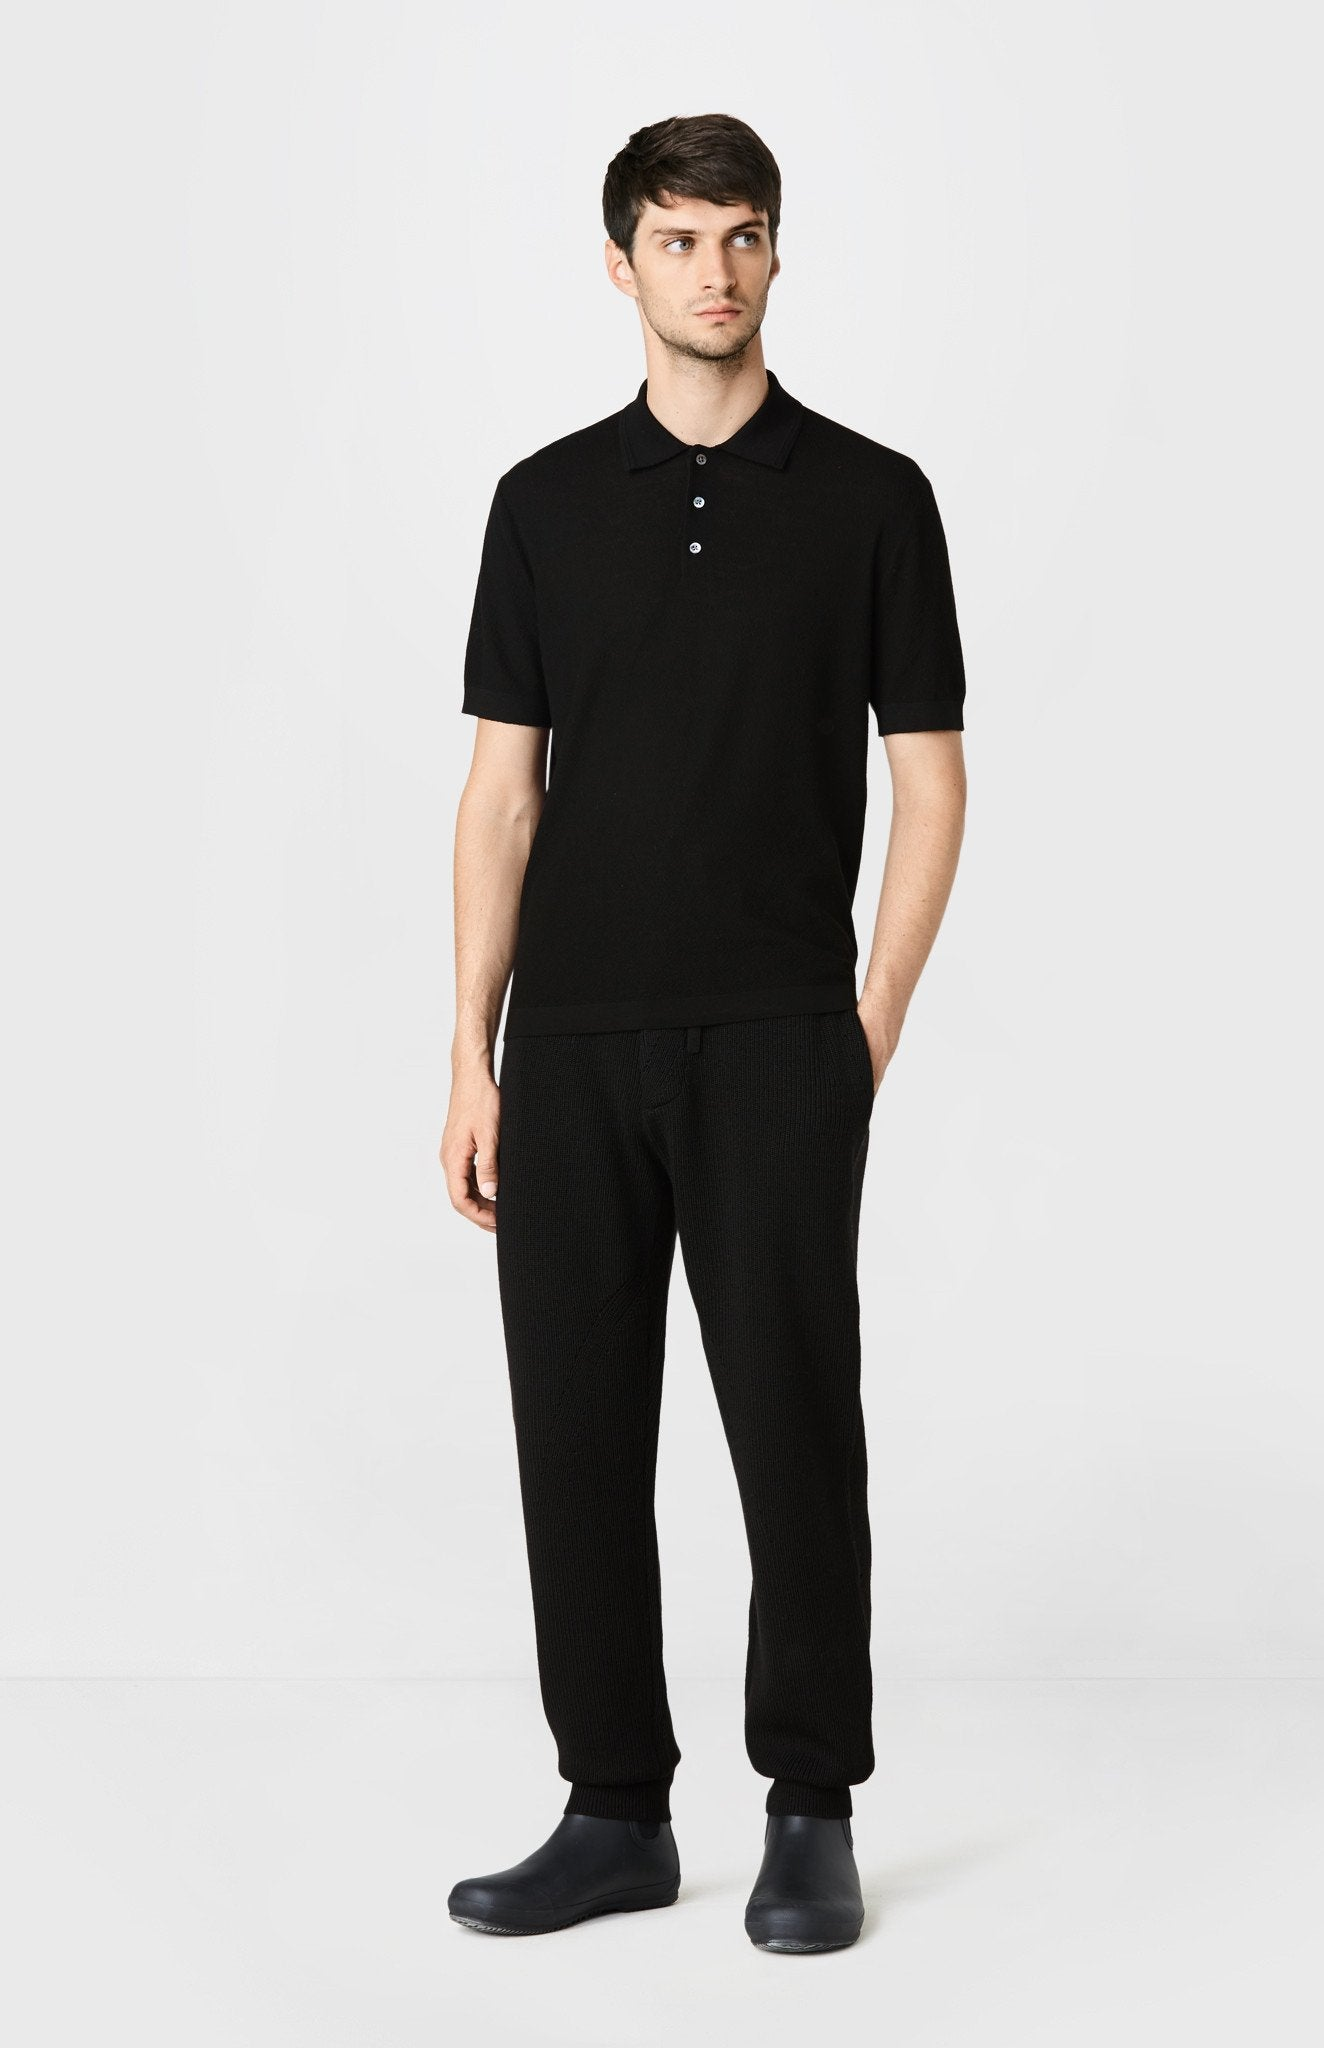 Knitted Textured Stitch Polo Shirt in Black